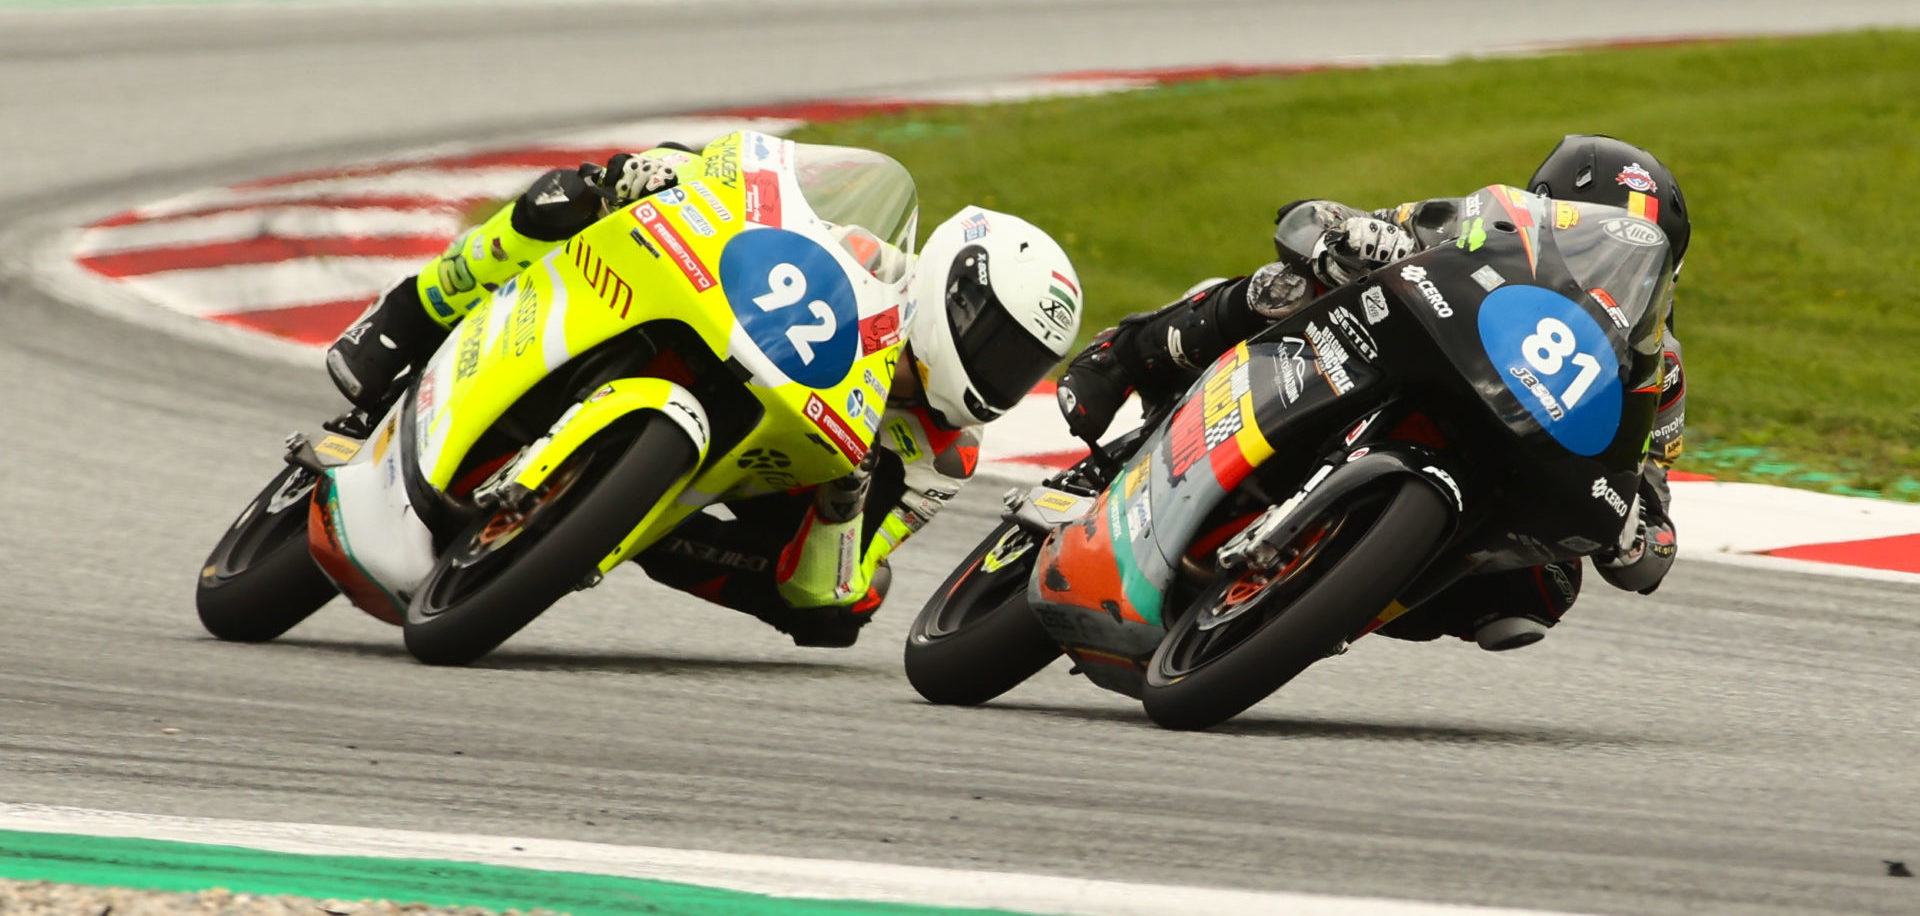 Belgian Lorenz Luciano (81) and Hungarian-American Rossi Moor (92) battled to the checkered flag in Race Two. Photo courtesy Dorna.